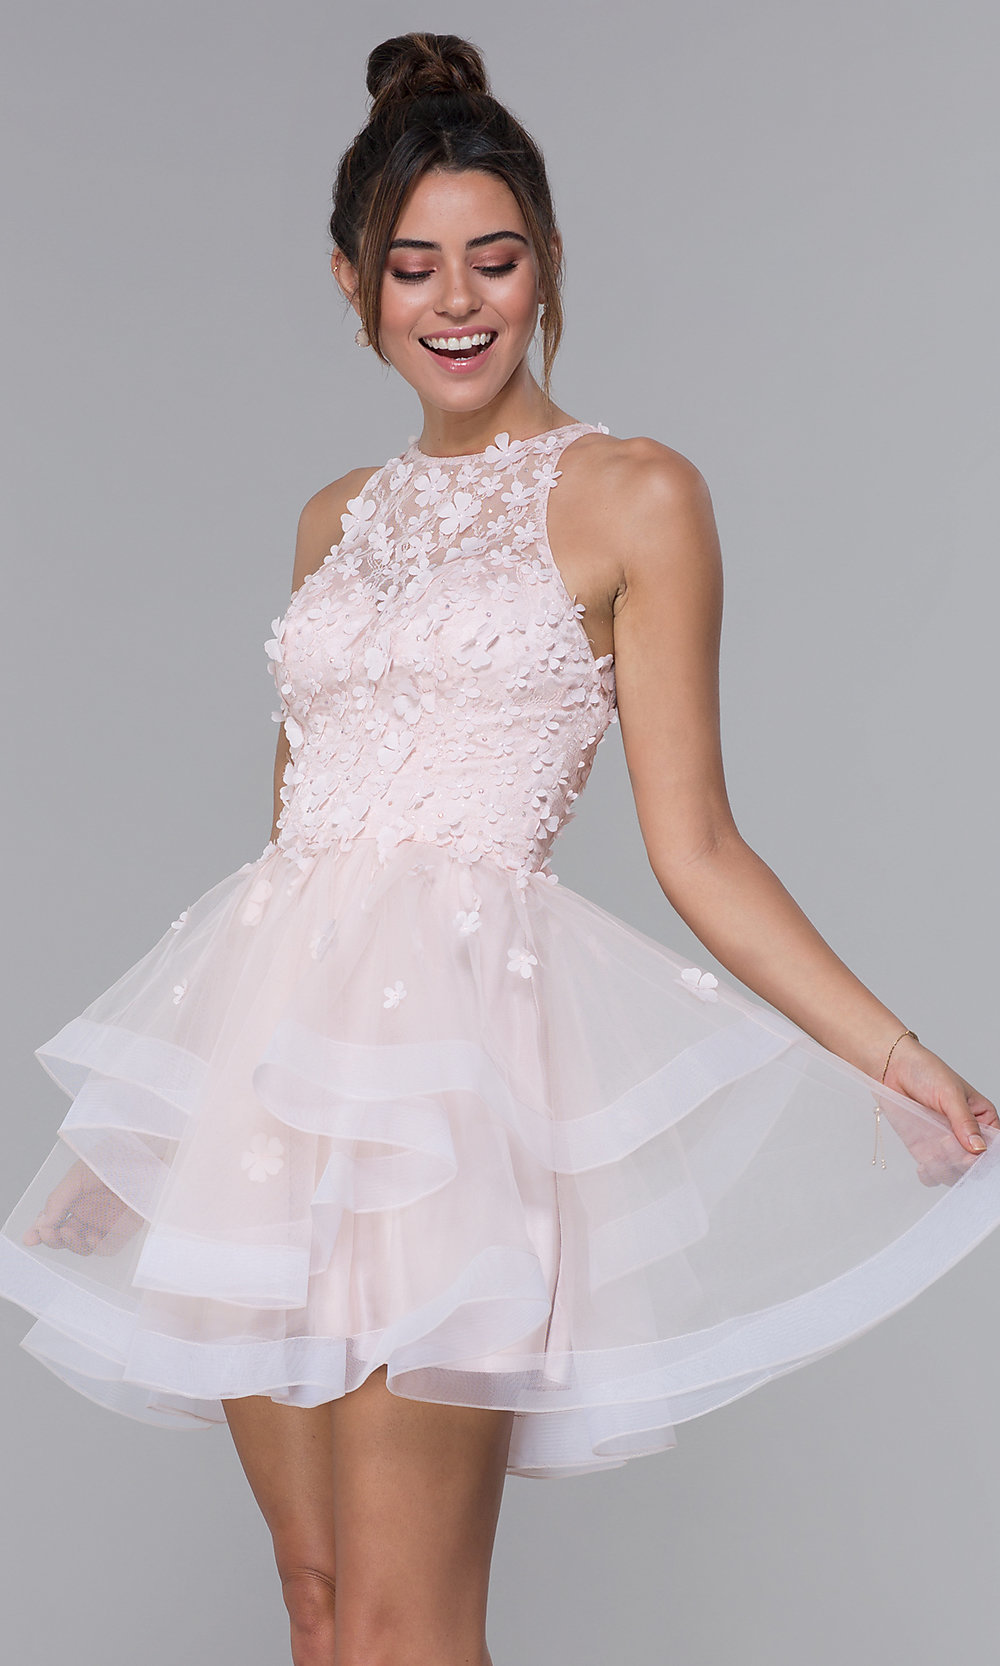 315108a120b1 Lace-Bodice Tulle Short Homecoming Dress - PromGirl